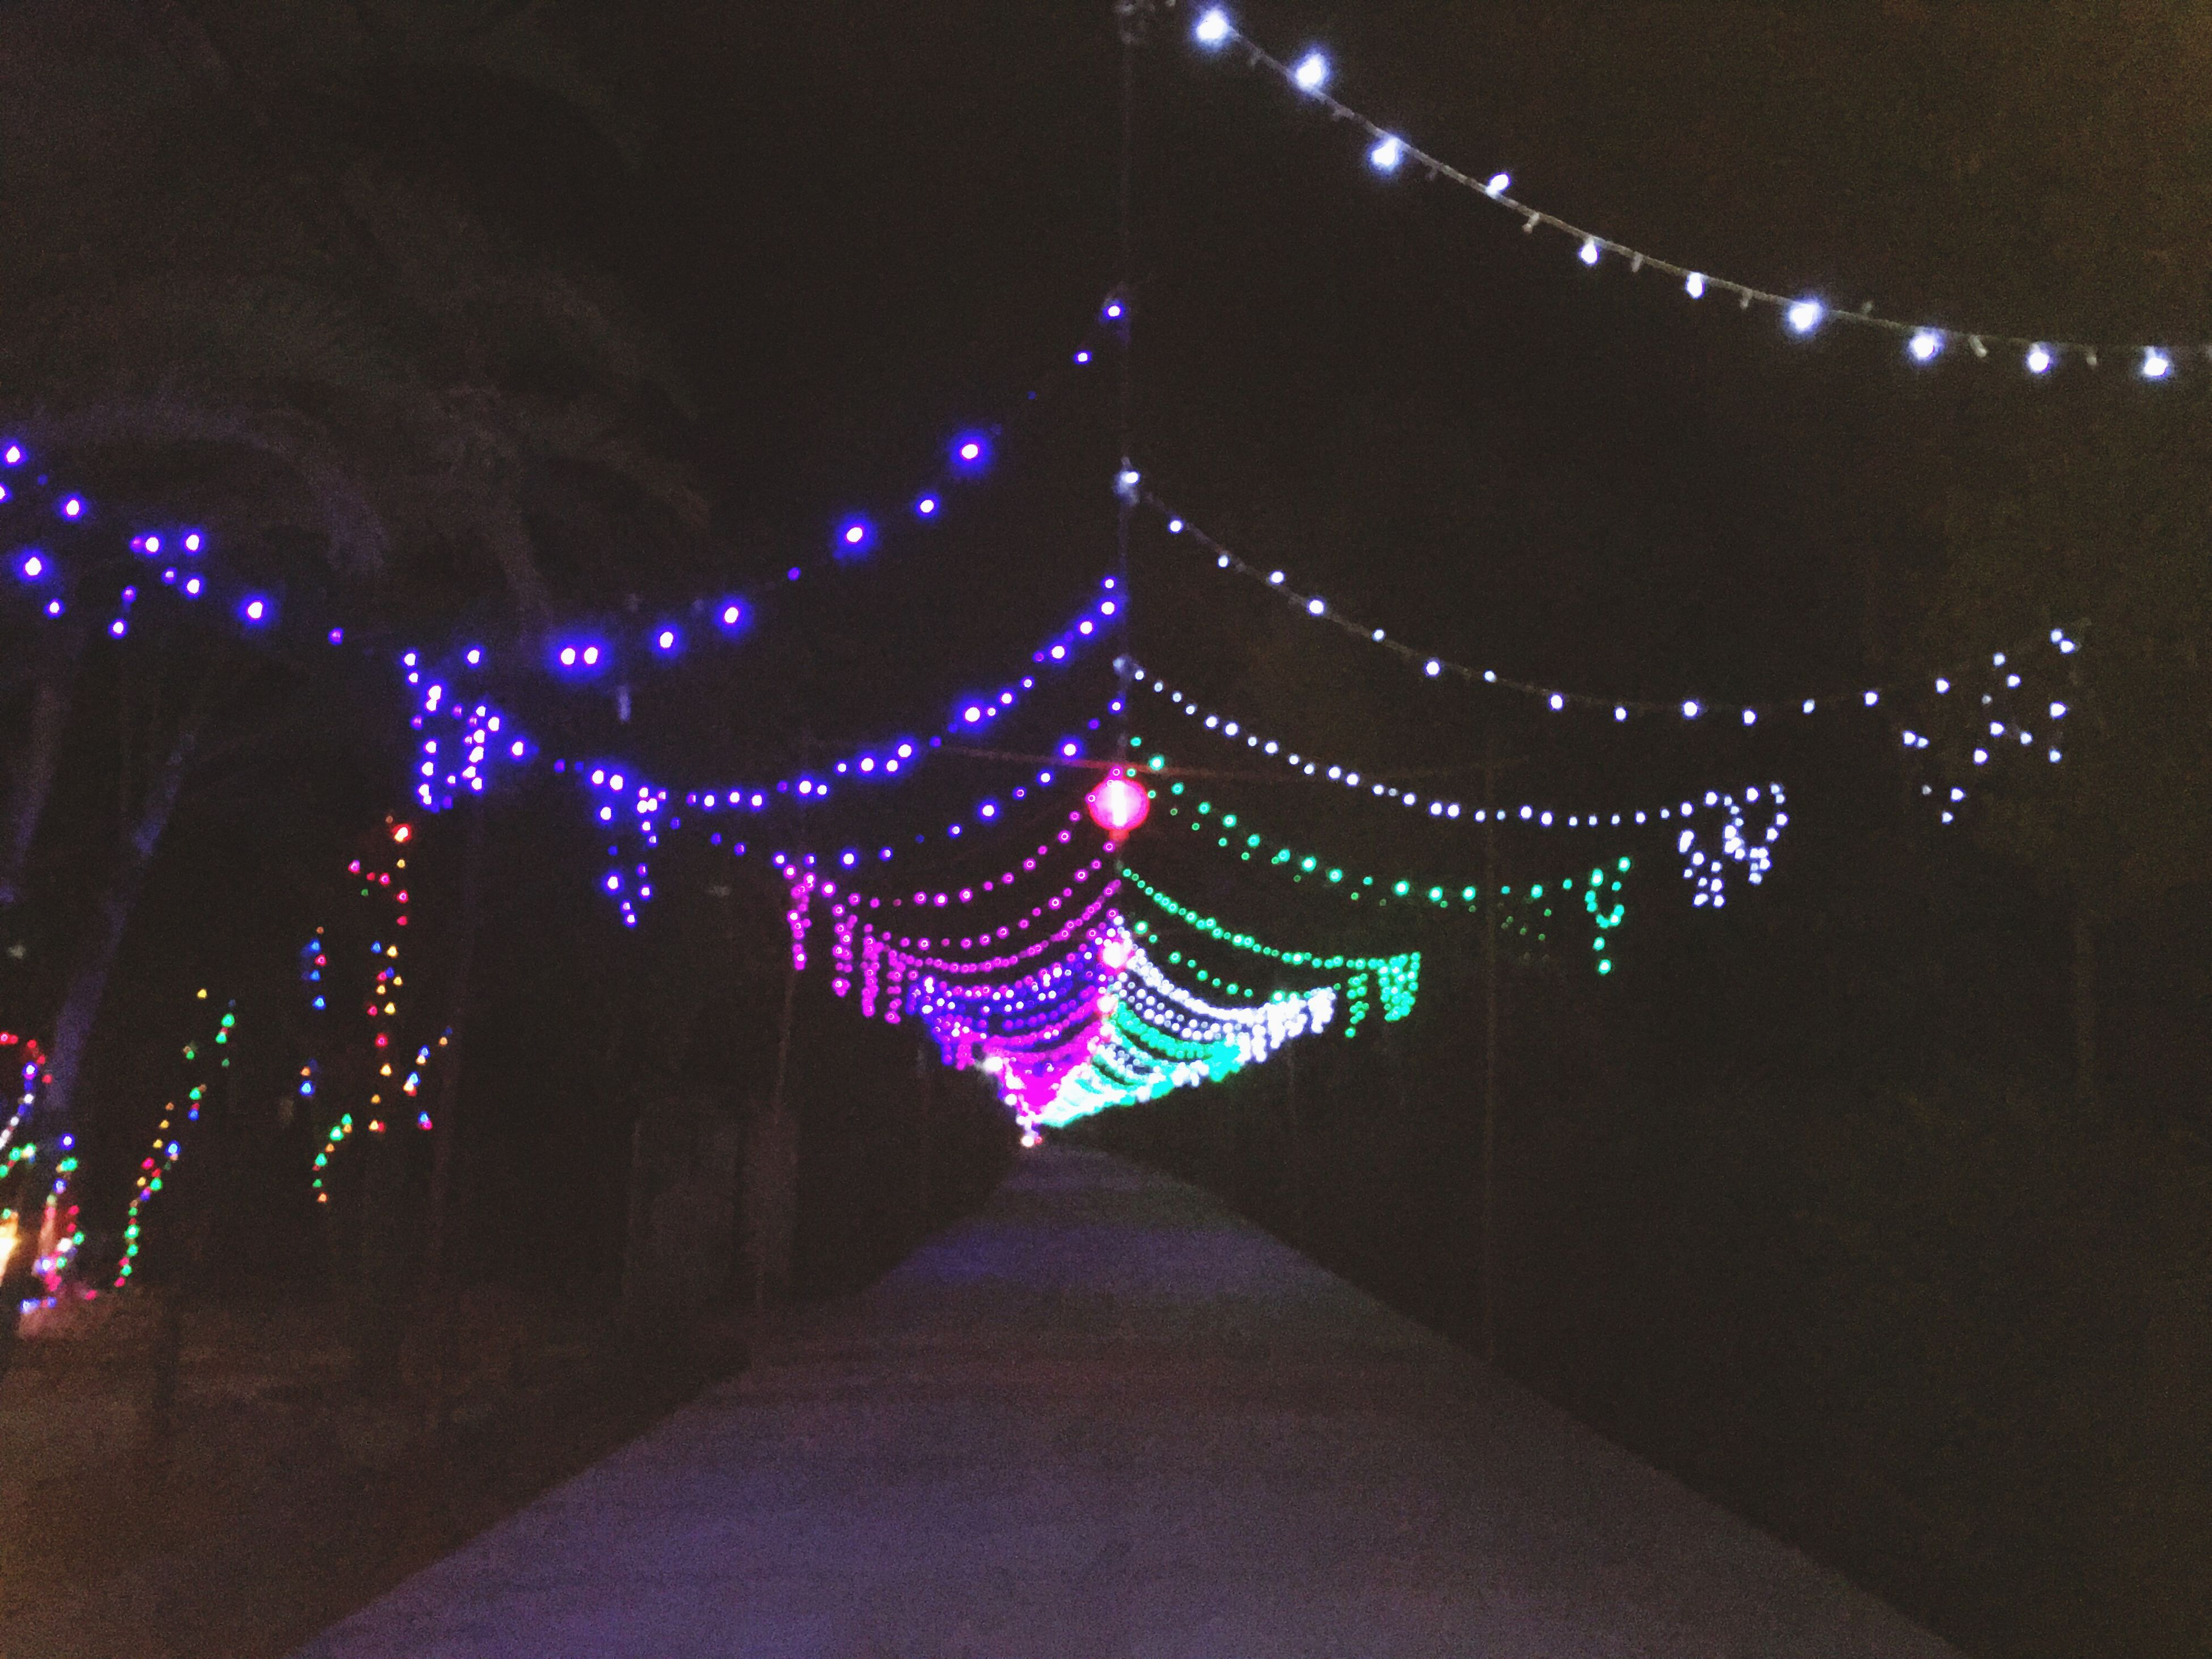 illuminated, night, lighting equipment, decoration, multi colored, the way forward, built structure, in a row, architecture, hanging, light - natural phenomenon, diminishing perspective, tradition, indoors, design, pattern, electric light, no people, celebration, cultures